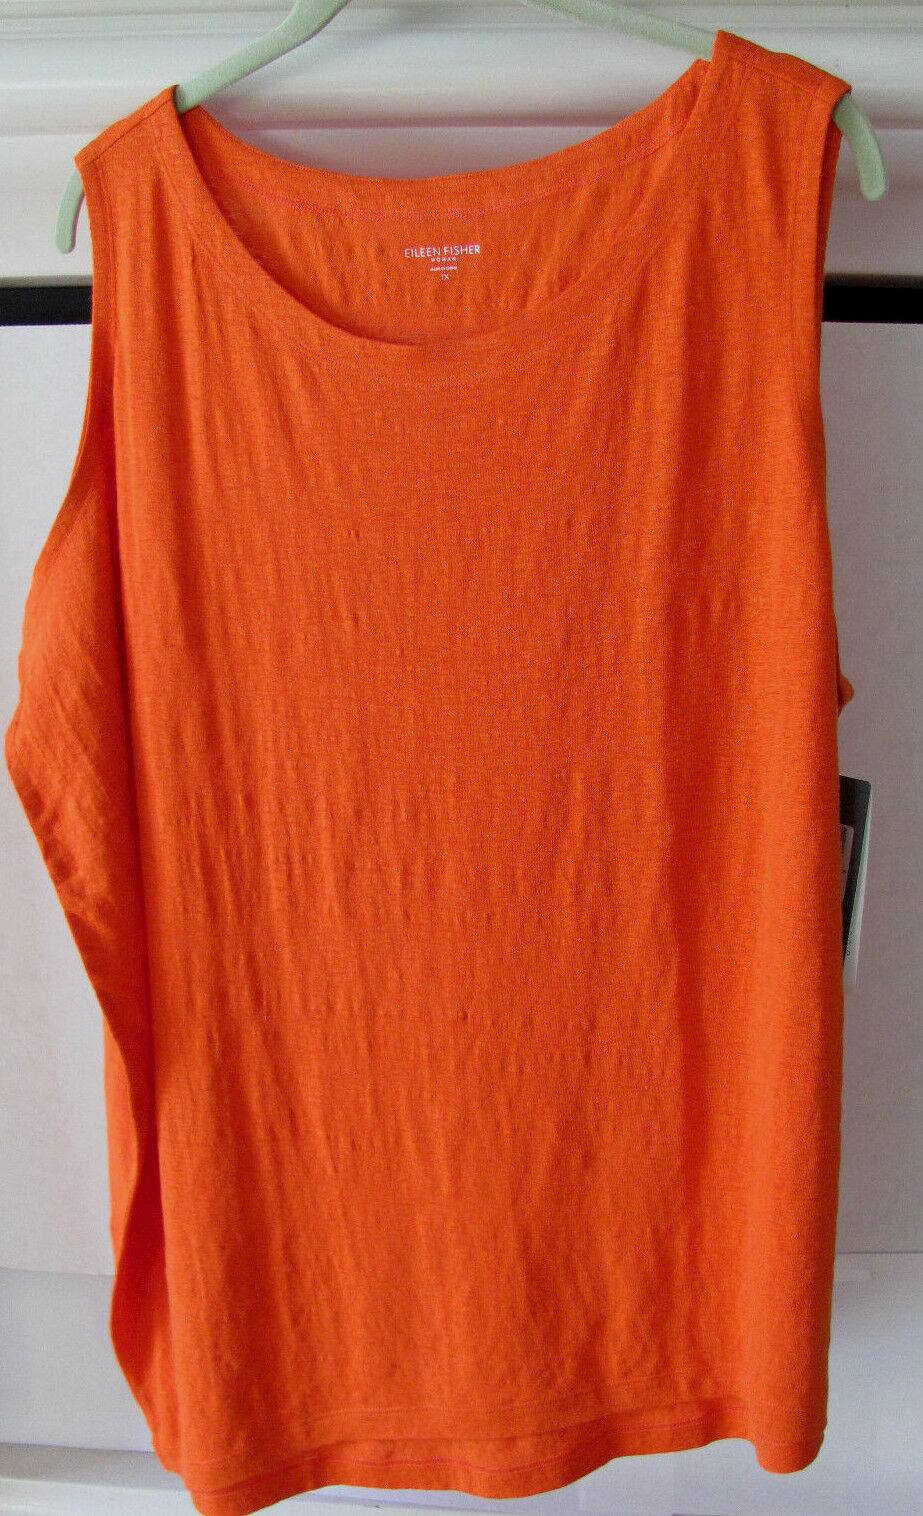 Eileen Fisher Organic Linen Ballet Neck Sleeveless Top - Flamingo Orange 1X-